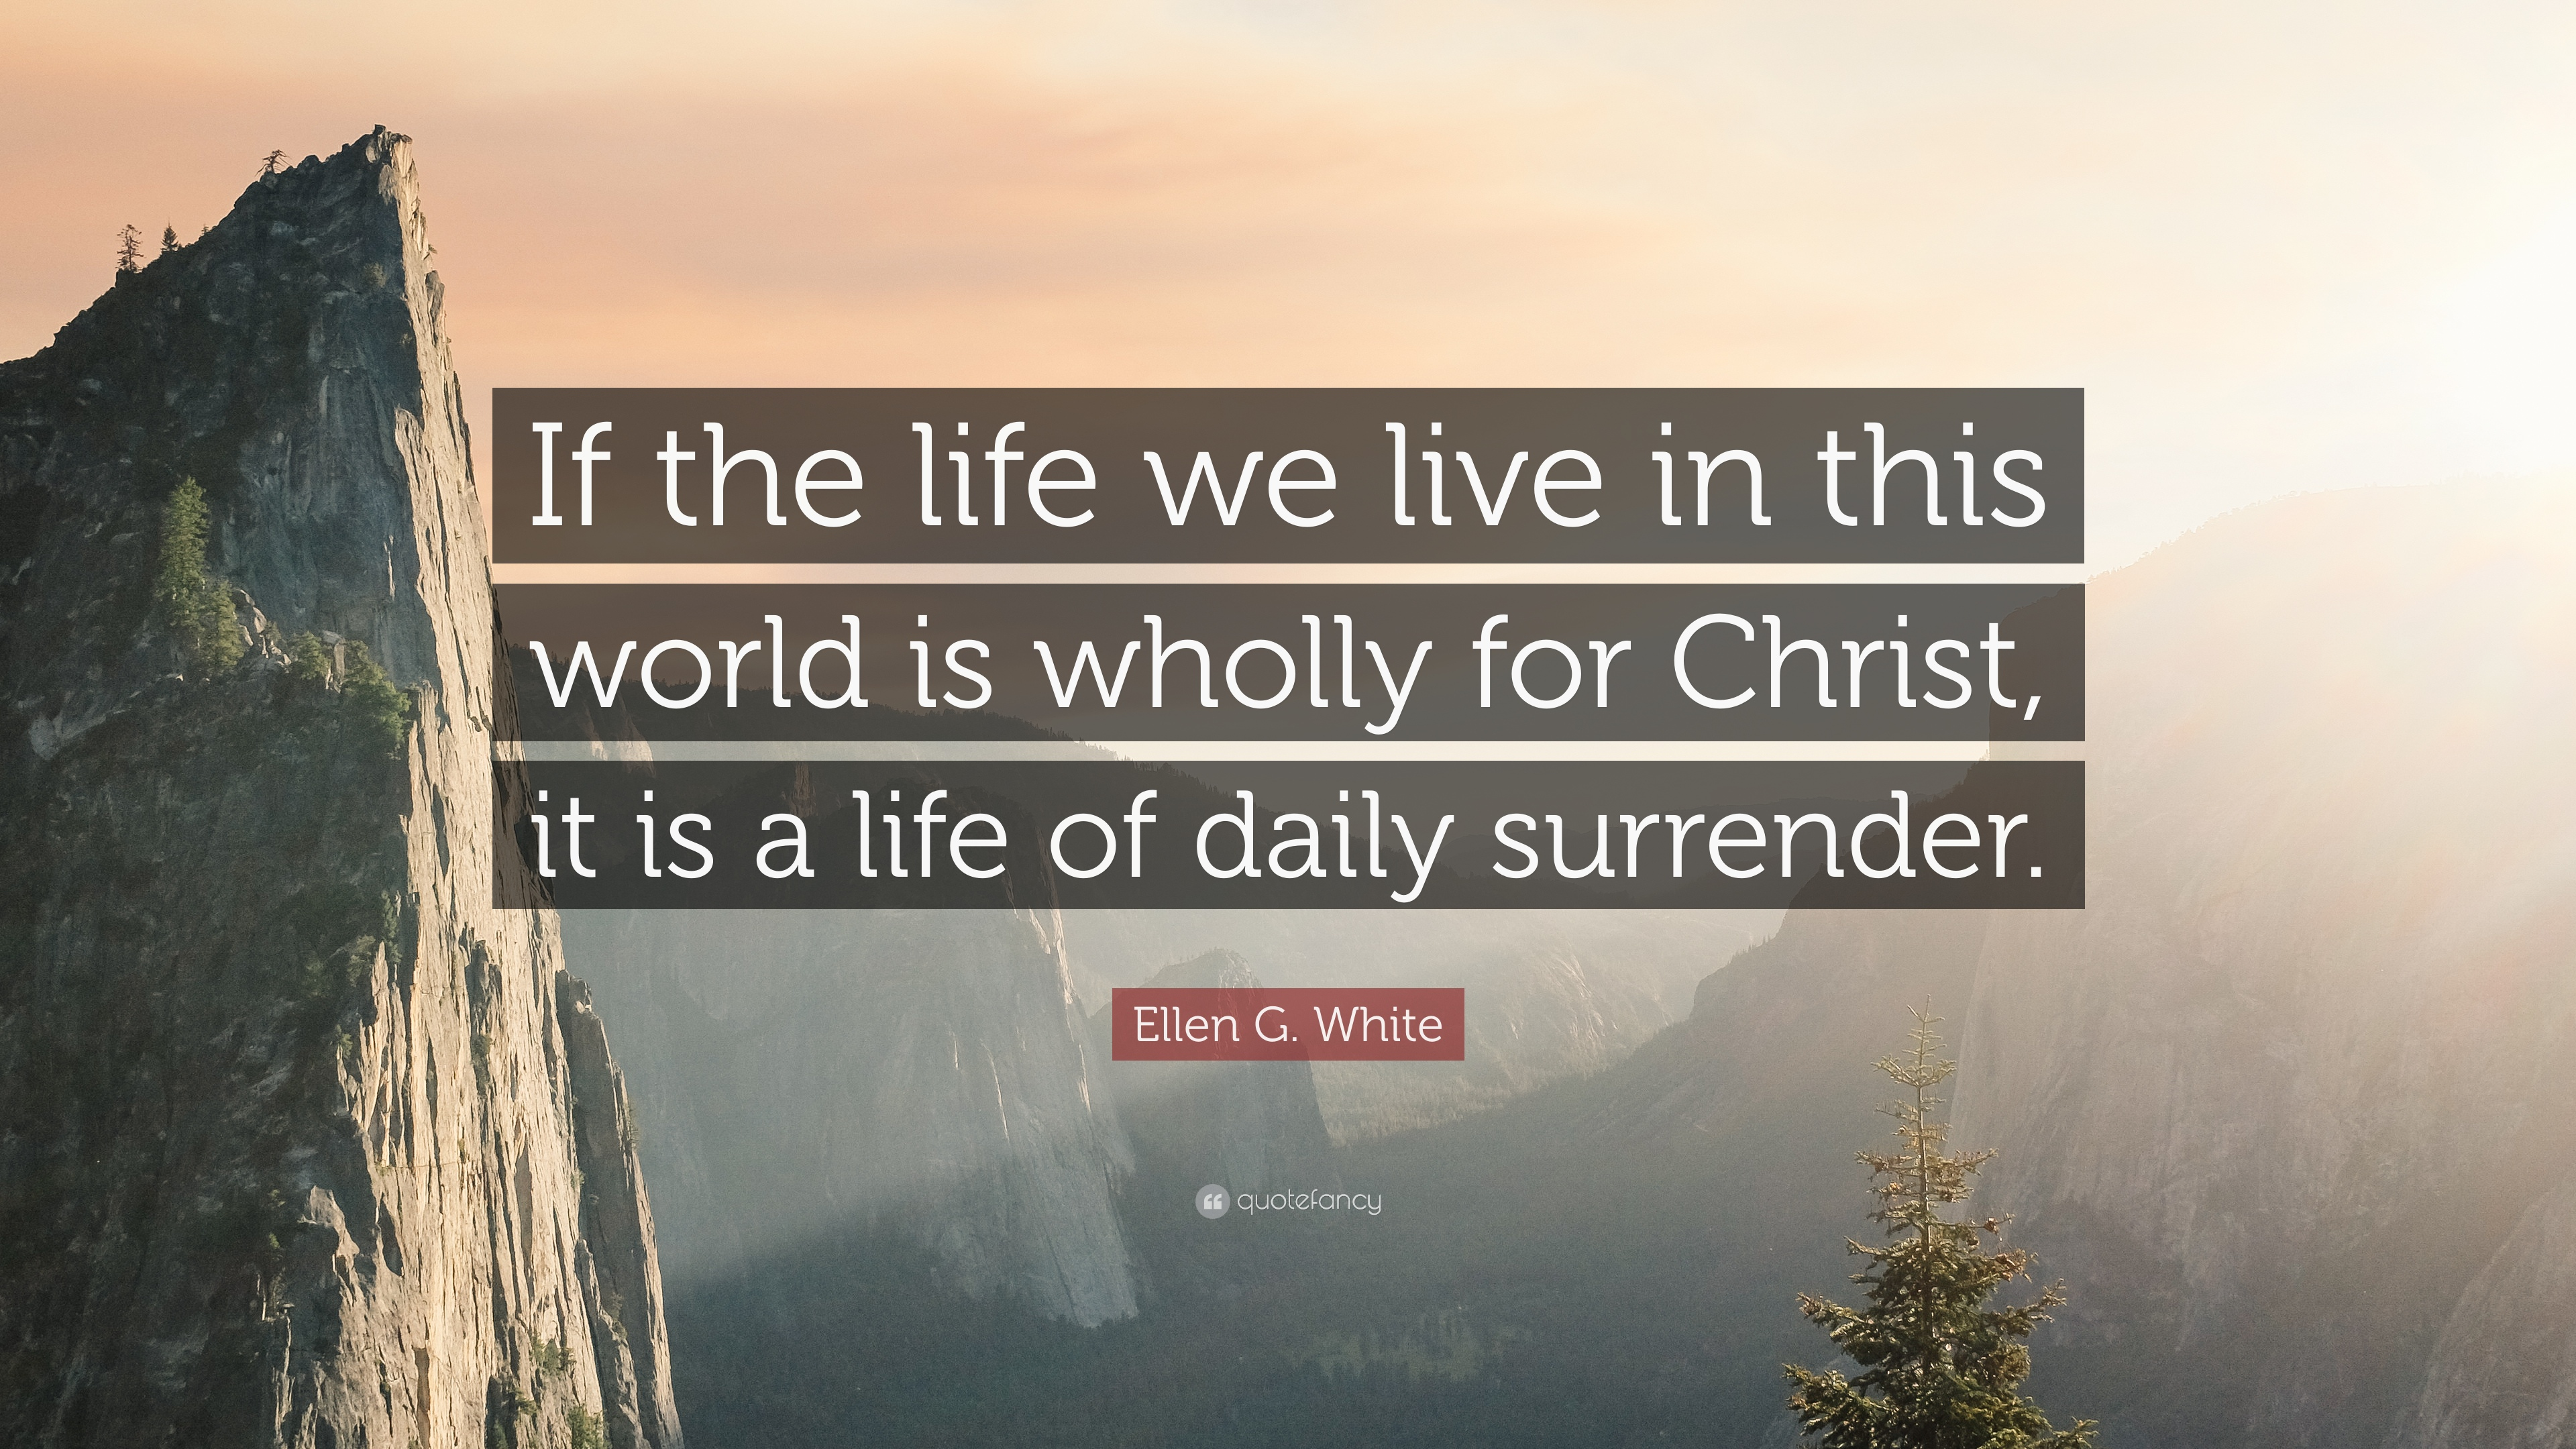 Ellen g white quote if the life we live in this world is wholly ellen g white quote if the life we live in this world is thecheapjerseys Images